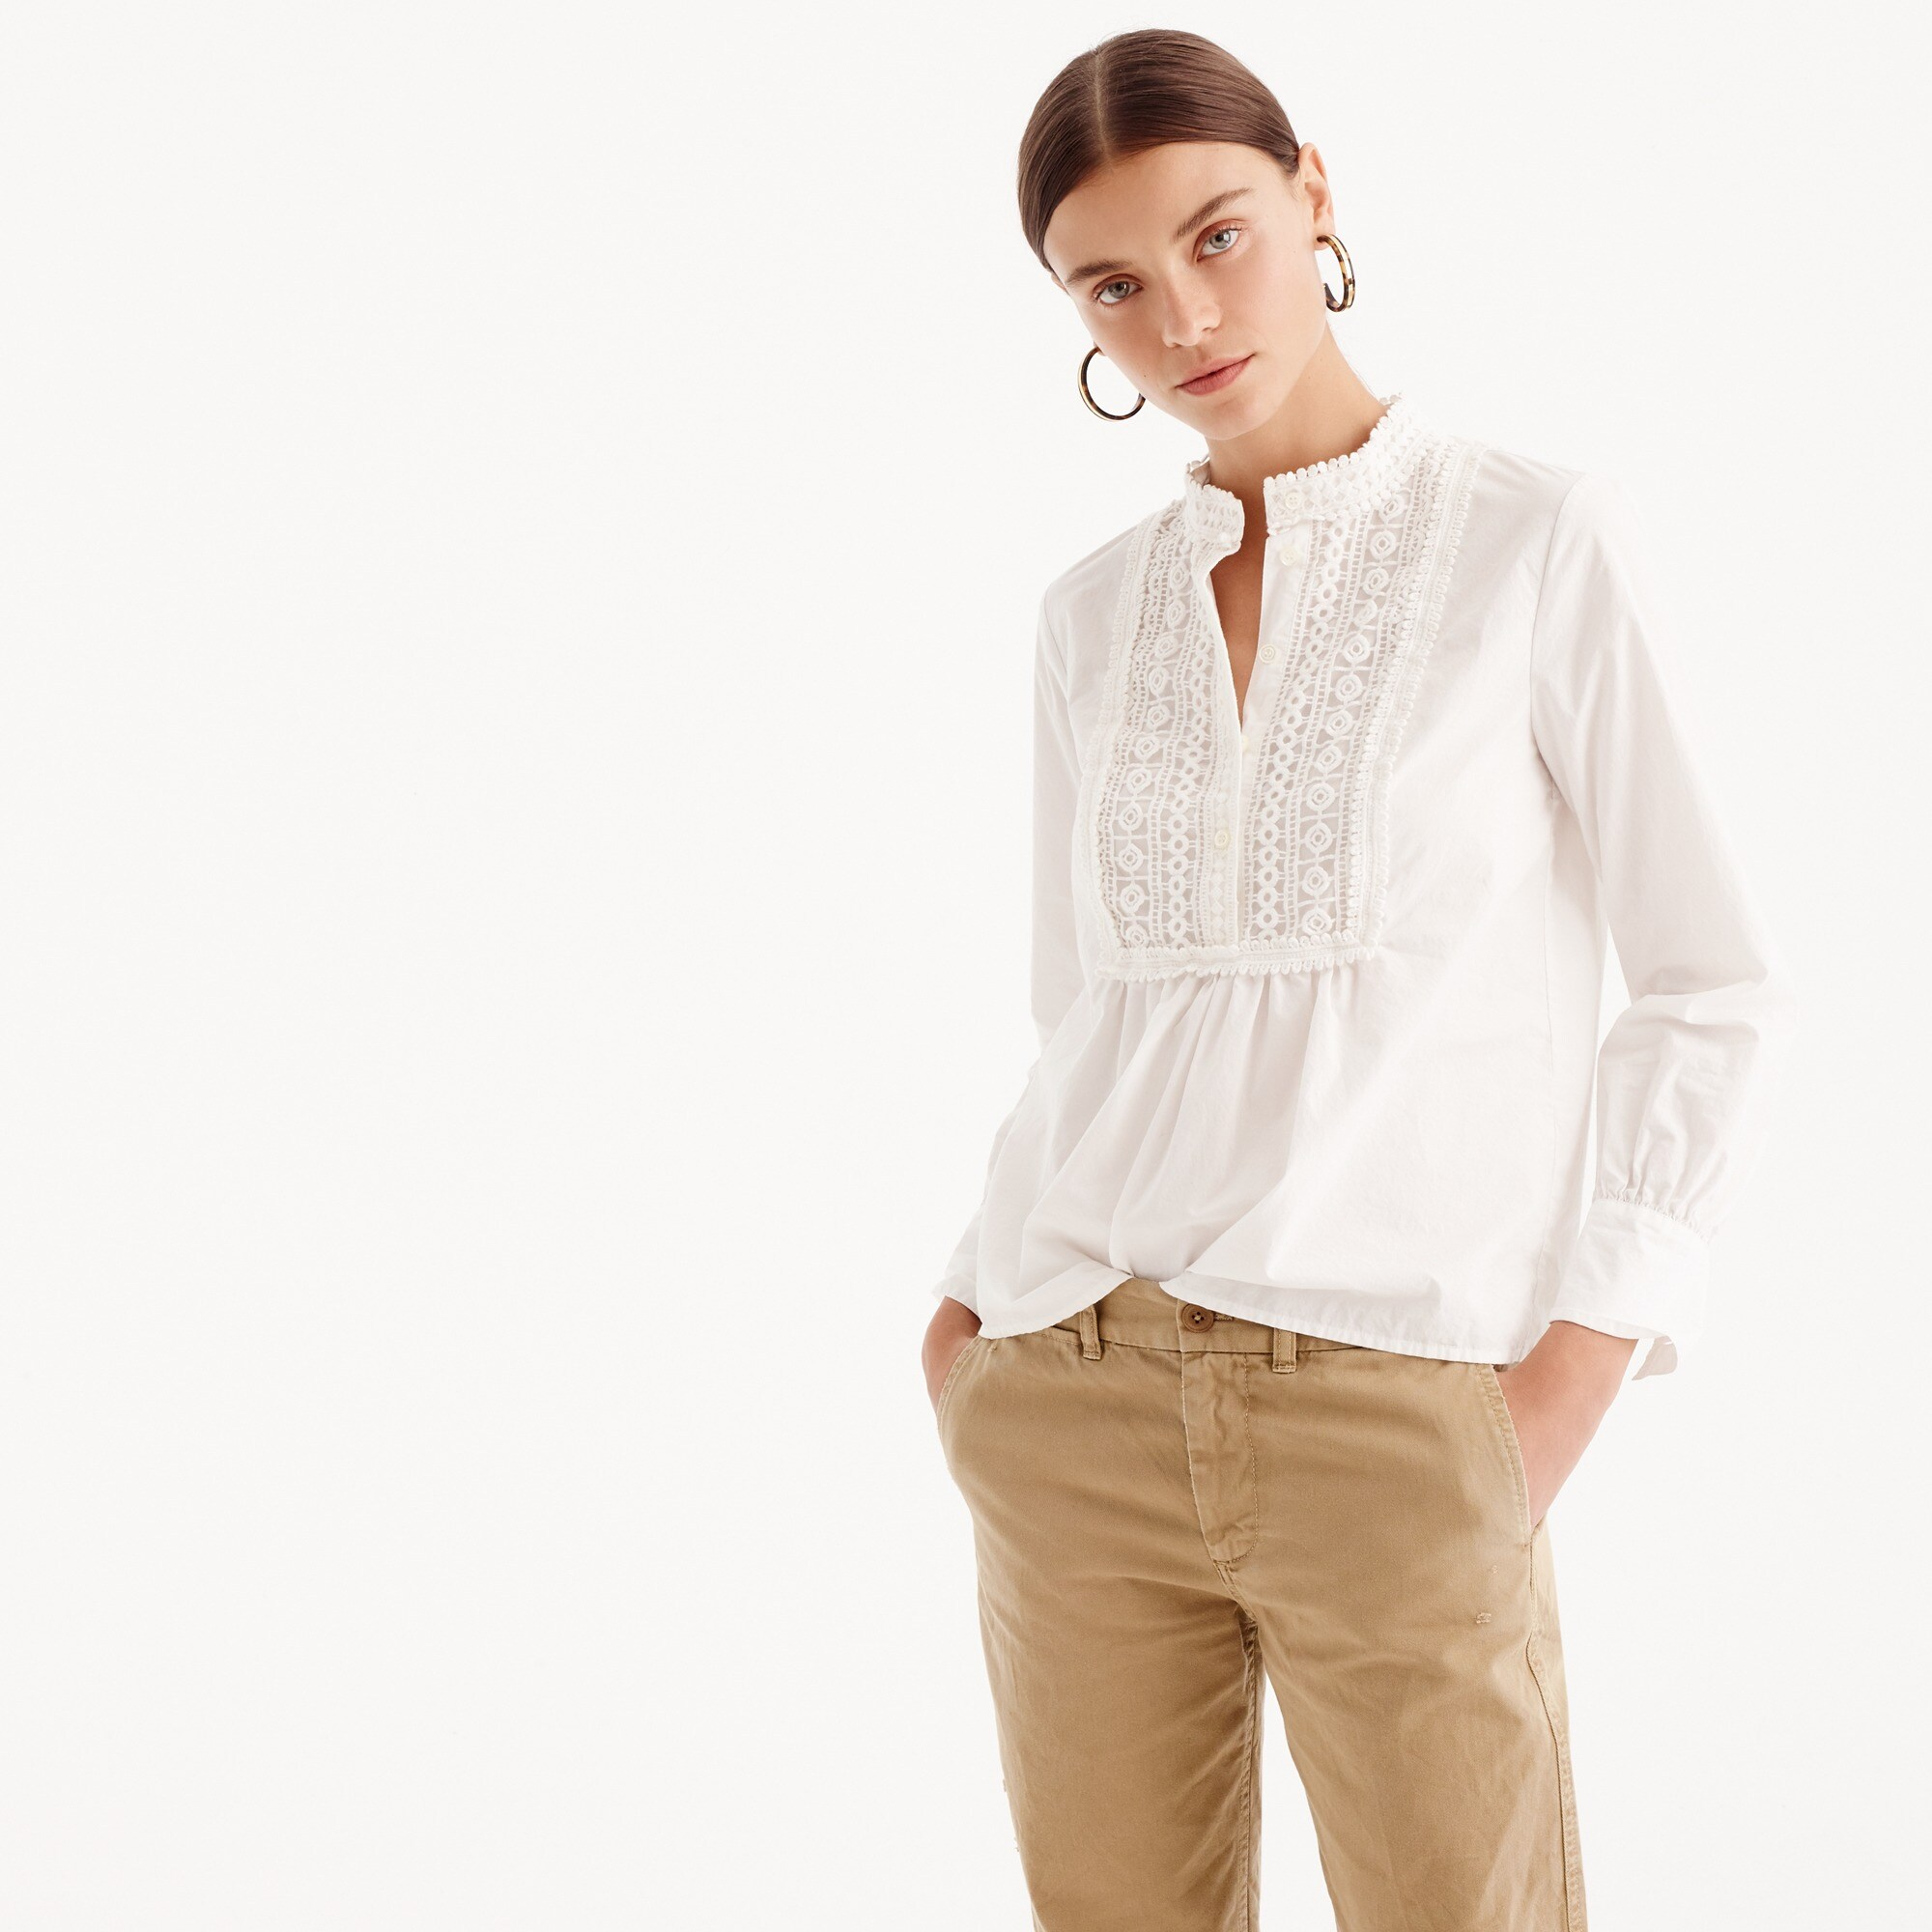 Popover shirt with lace bib